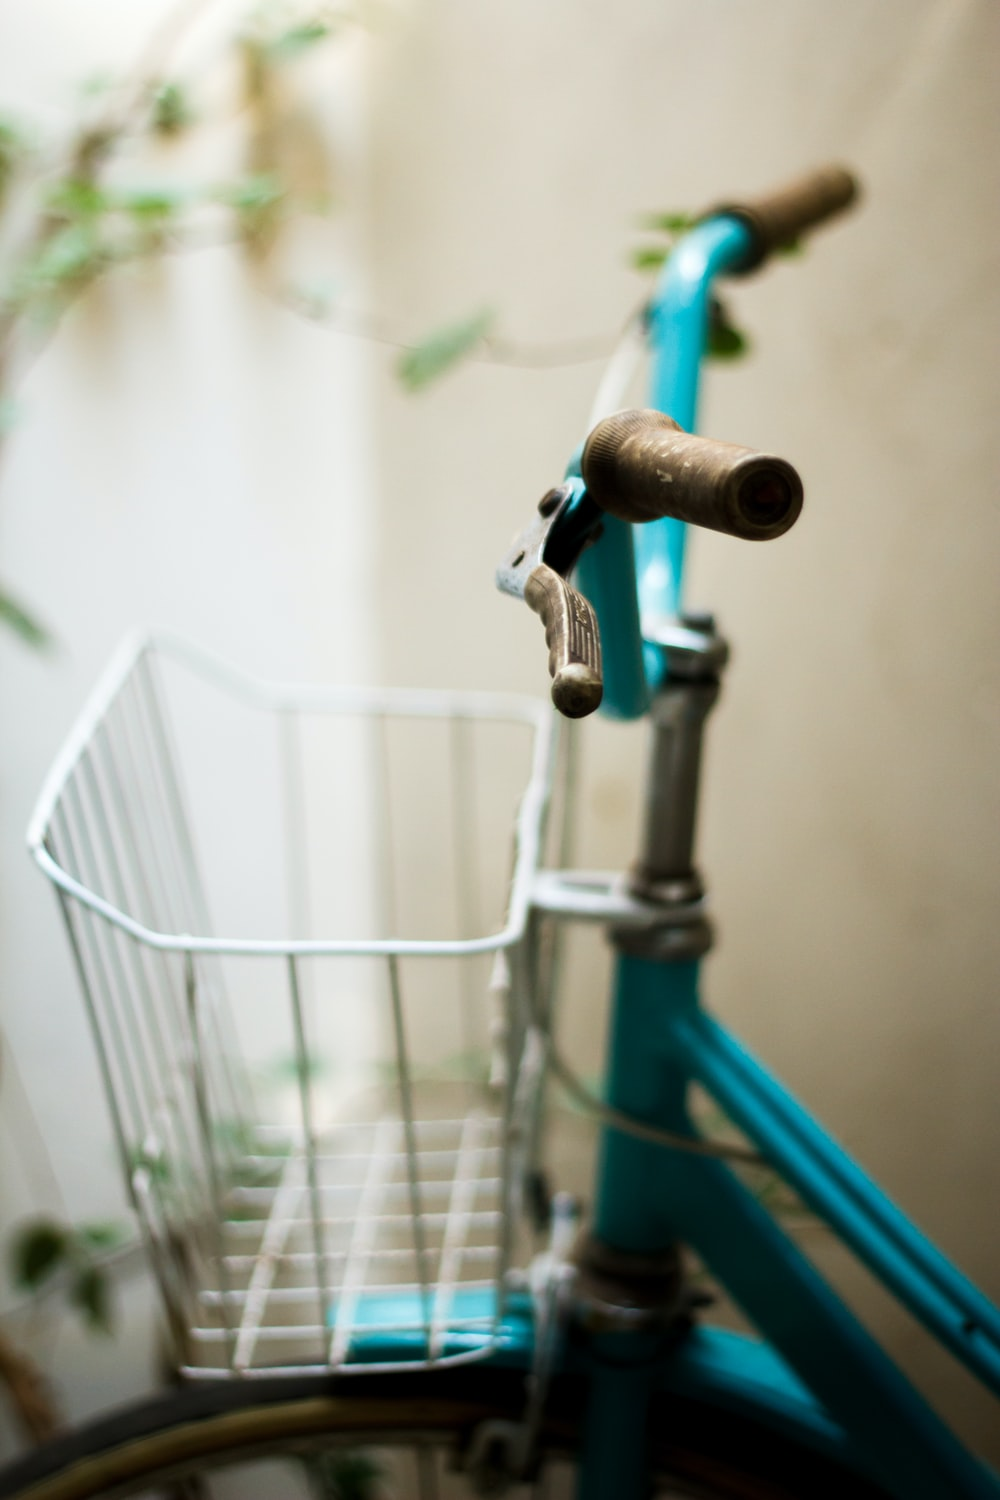 selective focus photography of blue bike